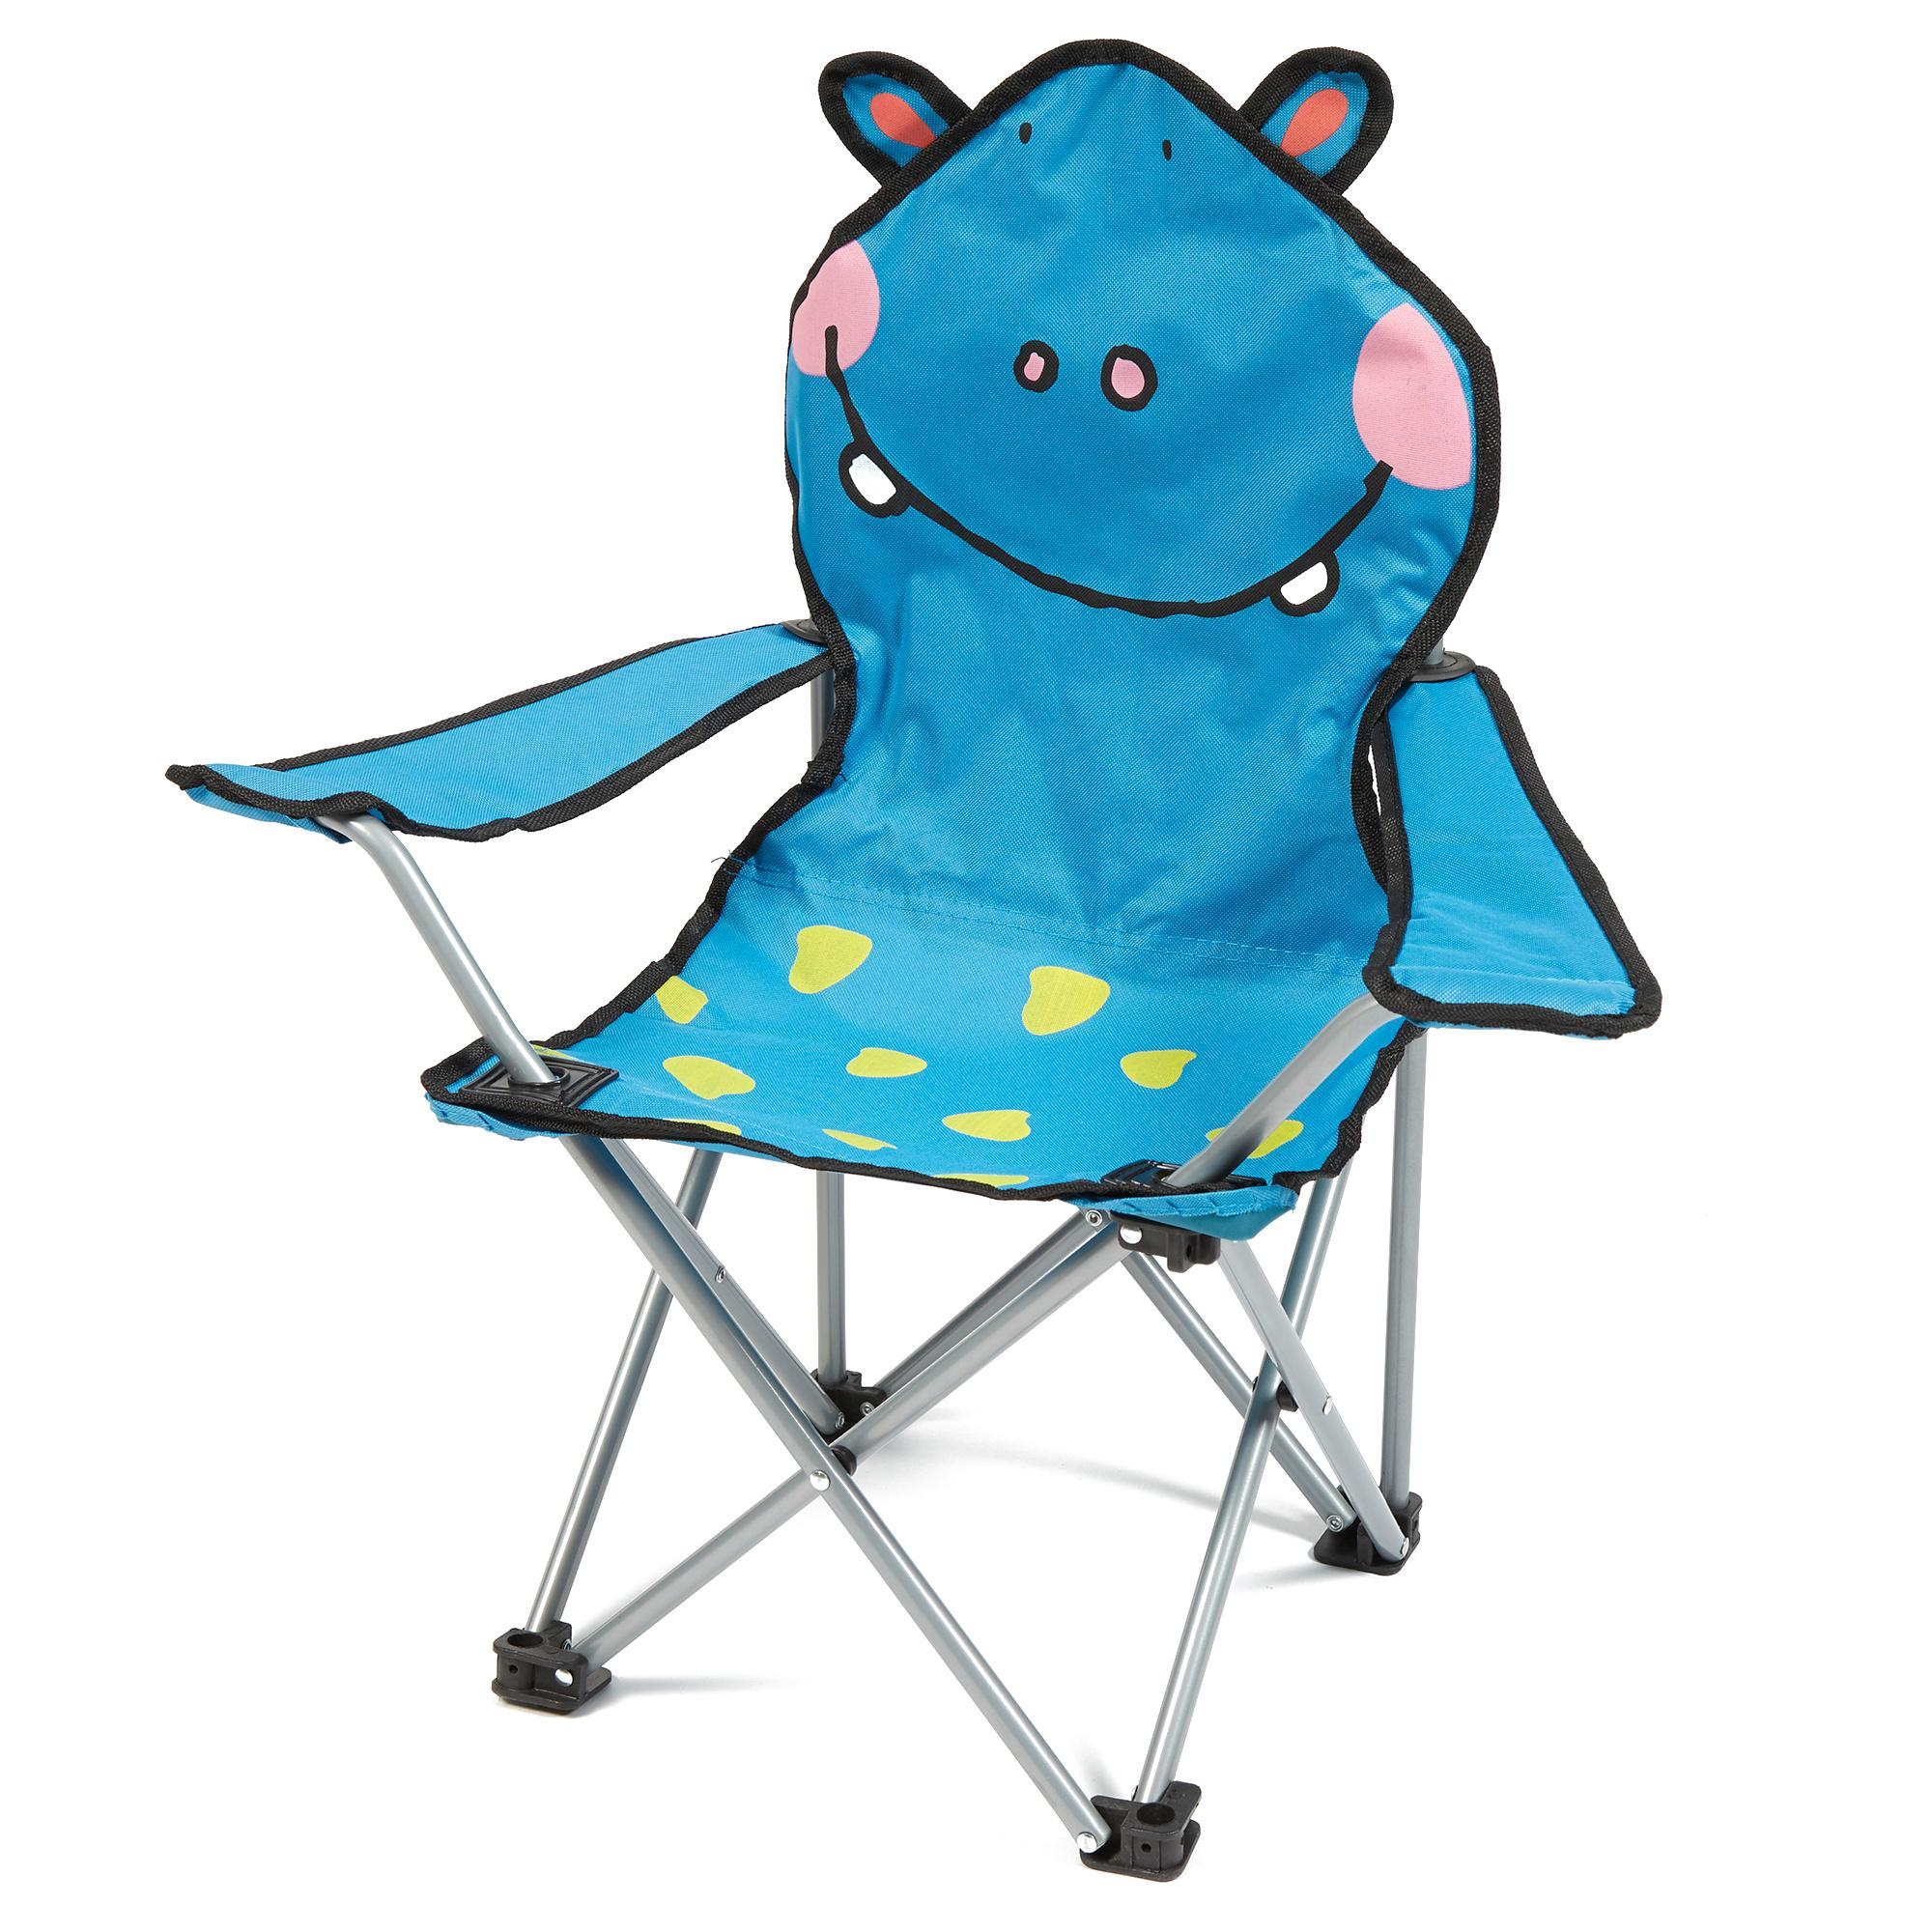 Kids Folding Chair Blue Folding Chair Shop For Cheap Outdoor Adventure And